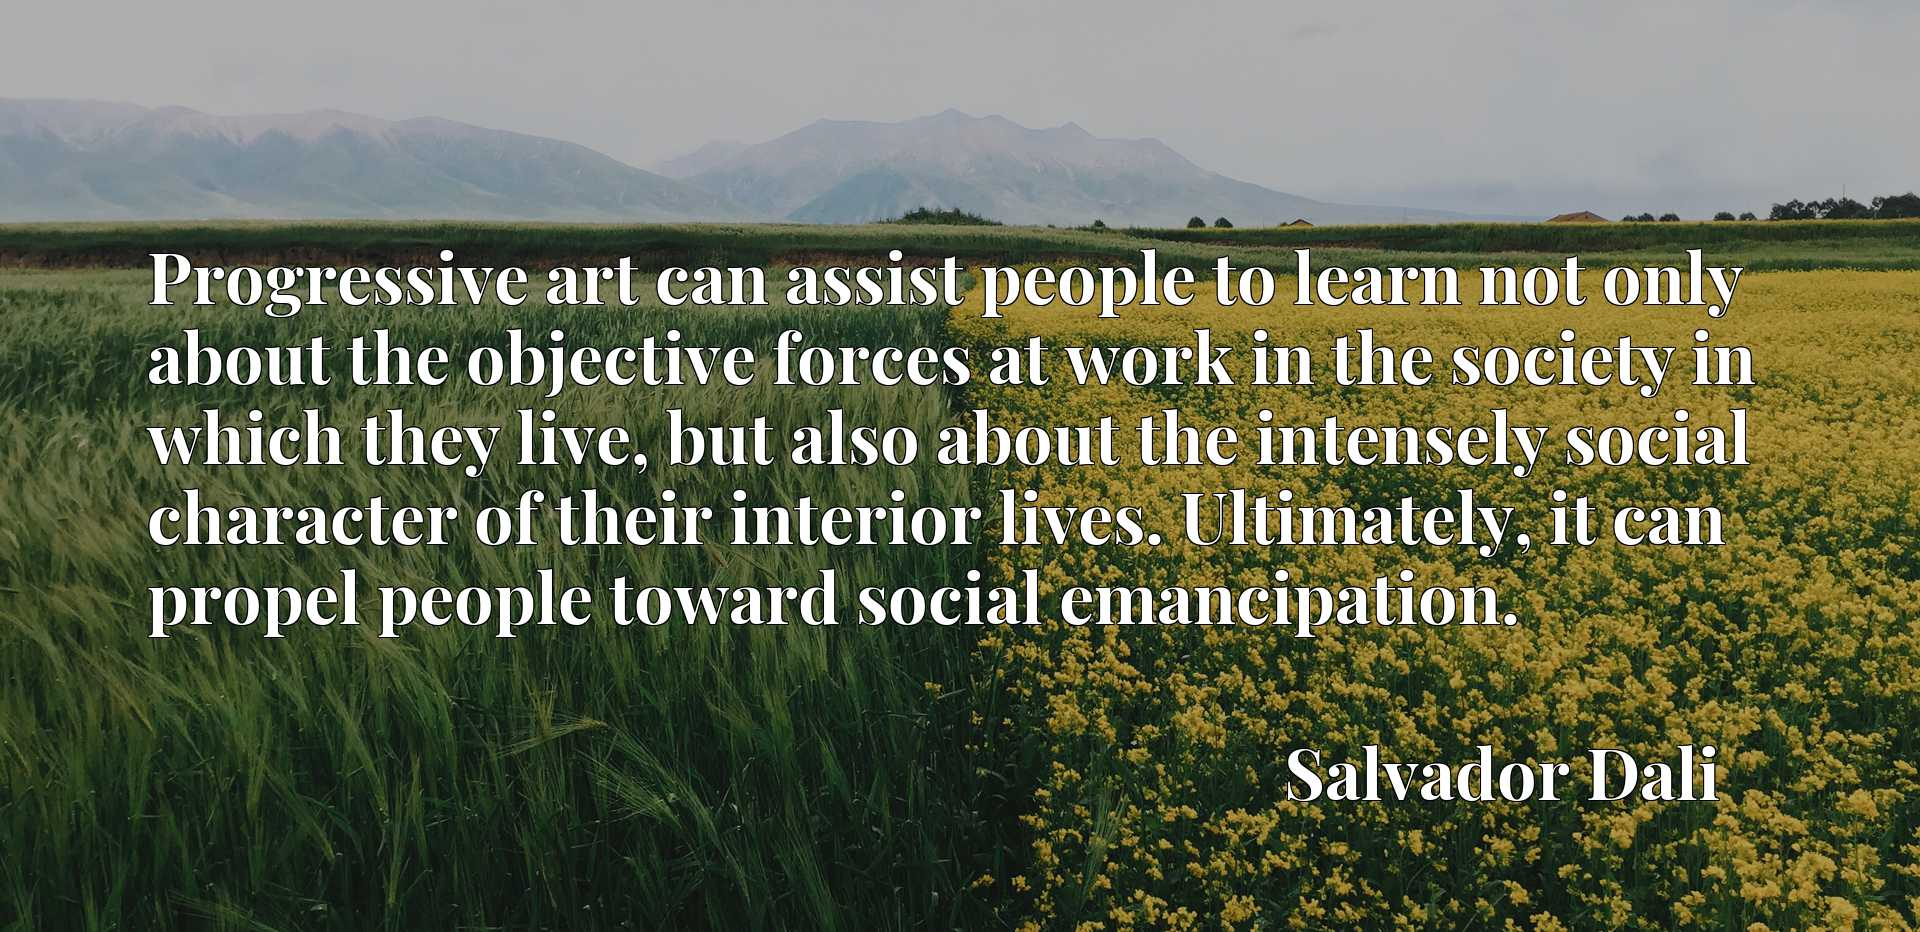 Progressive art can assist people to learn not only about the objective forces at work in the society in which they live, but also about the intensely social character of their interior lives. Ultimately, it can propel people toward social emancipation.